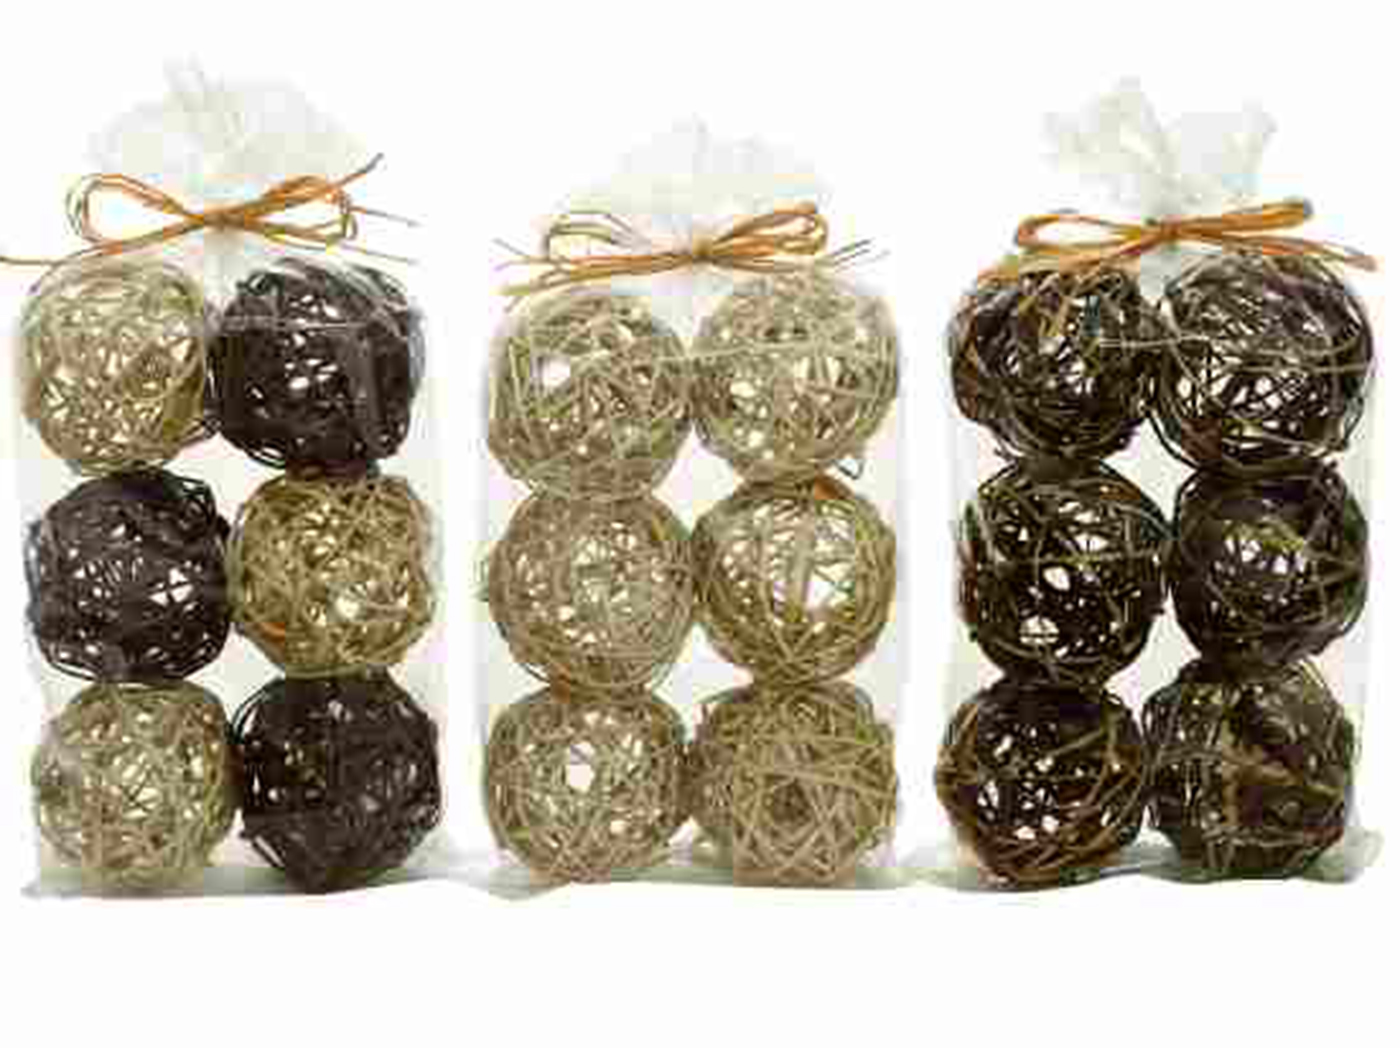 Set of 6 Assorted Natural Decorative Balls 4""